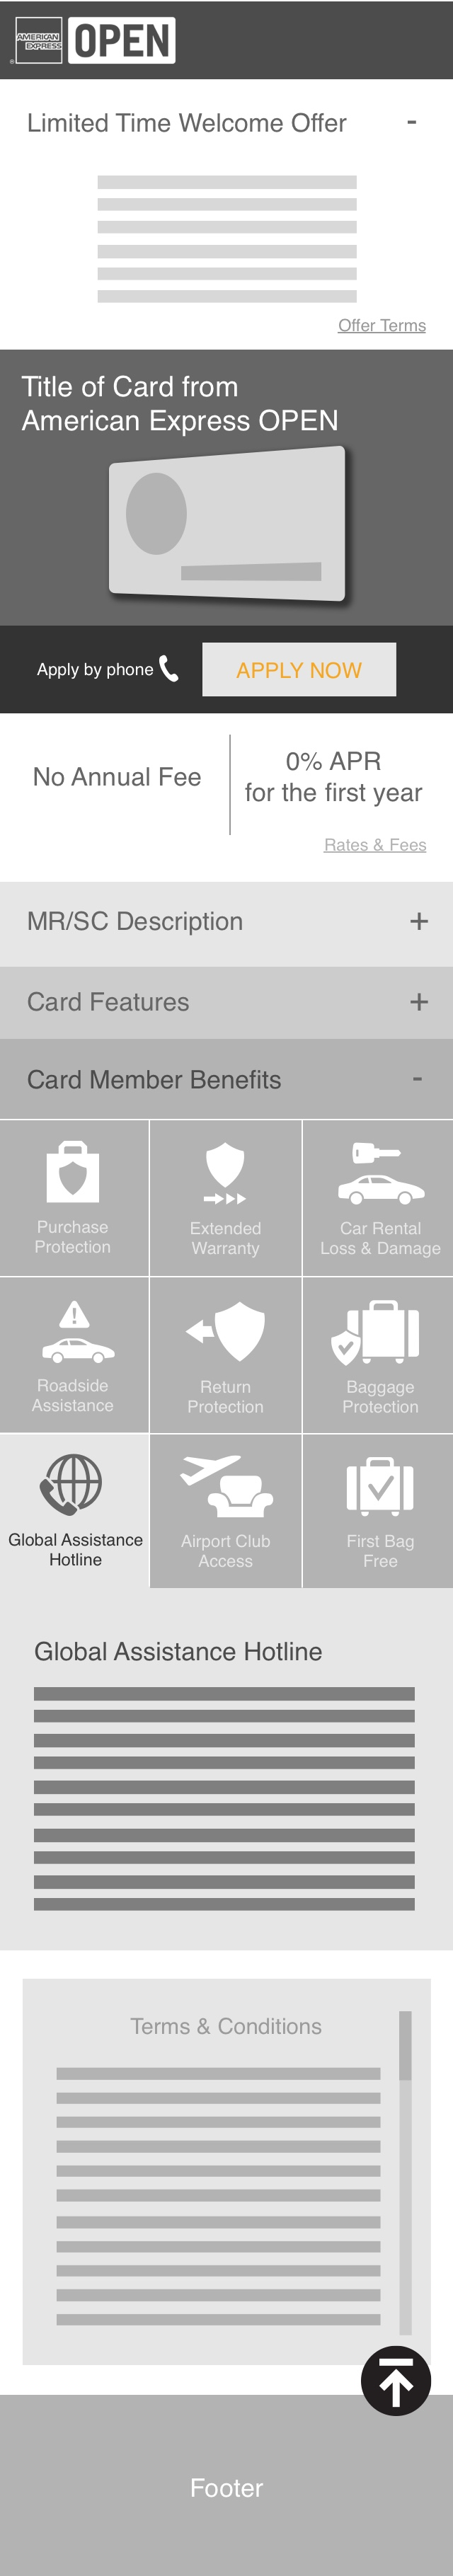 OliviaObin_AmericanExpress_Mobile - Benefits 1.jpg